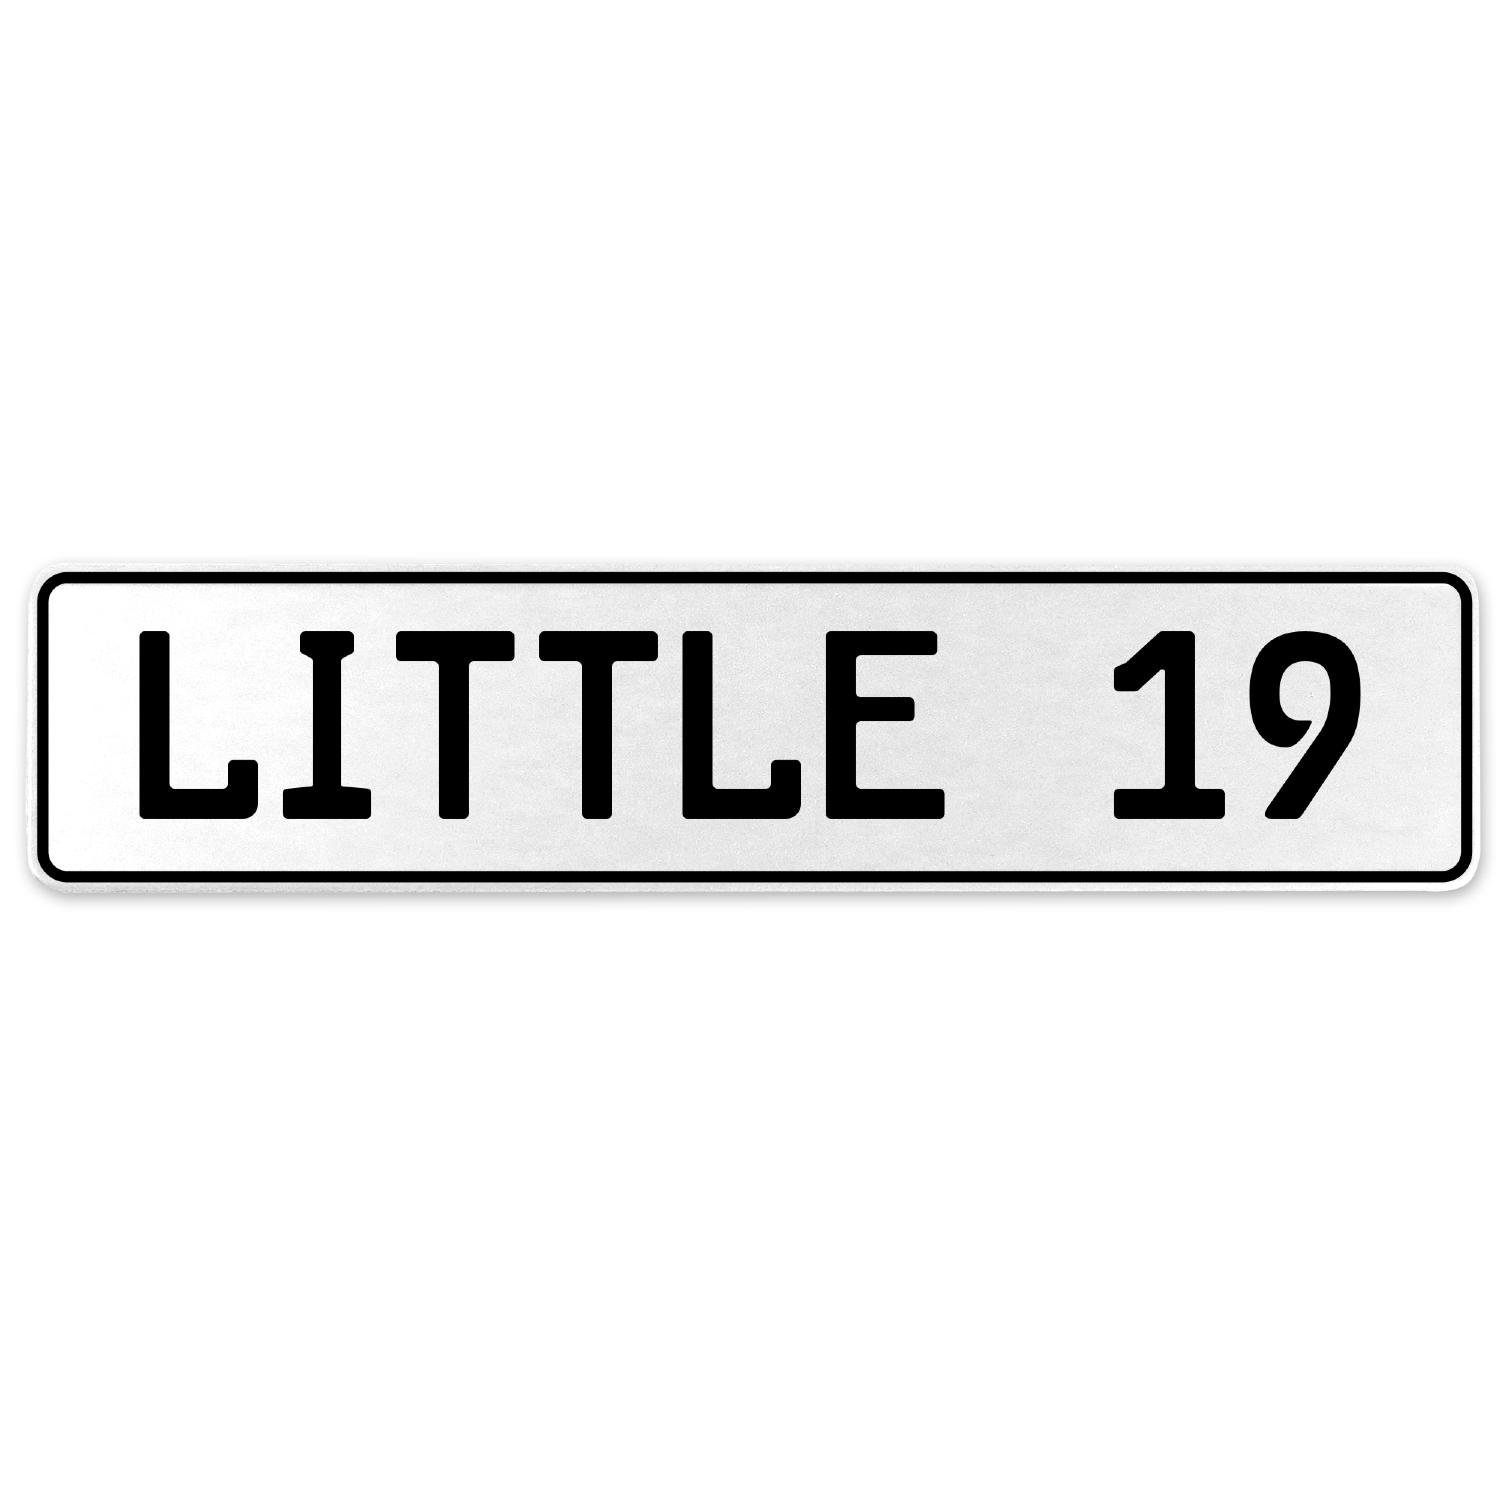 Vintage Parts 556299 Little 19 White Stamped Aluminum European License Plate